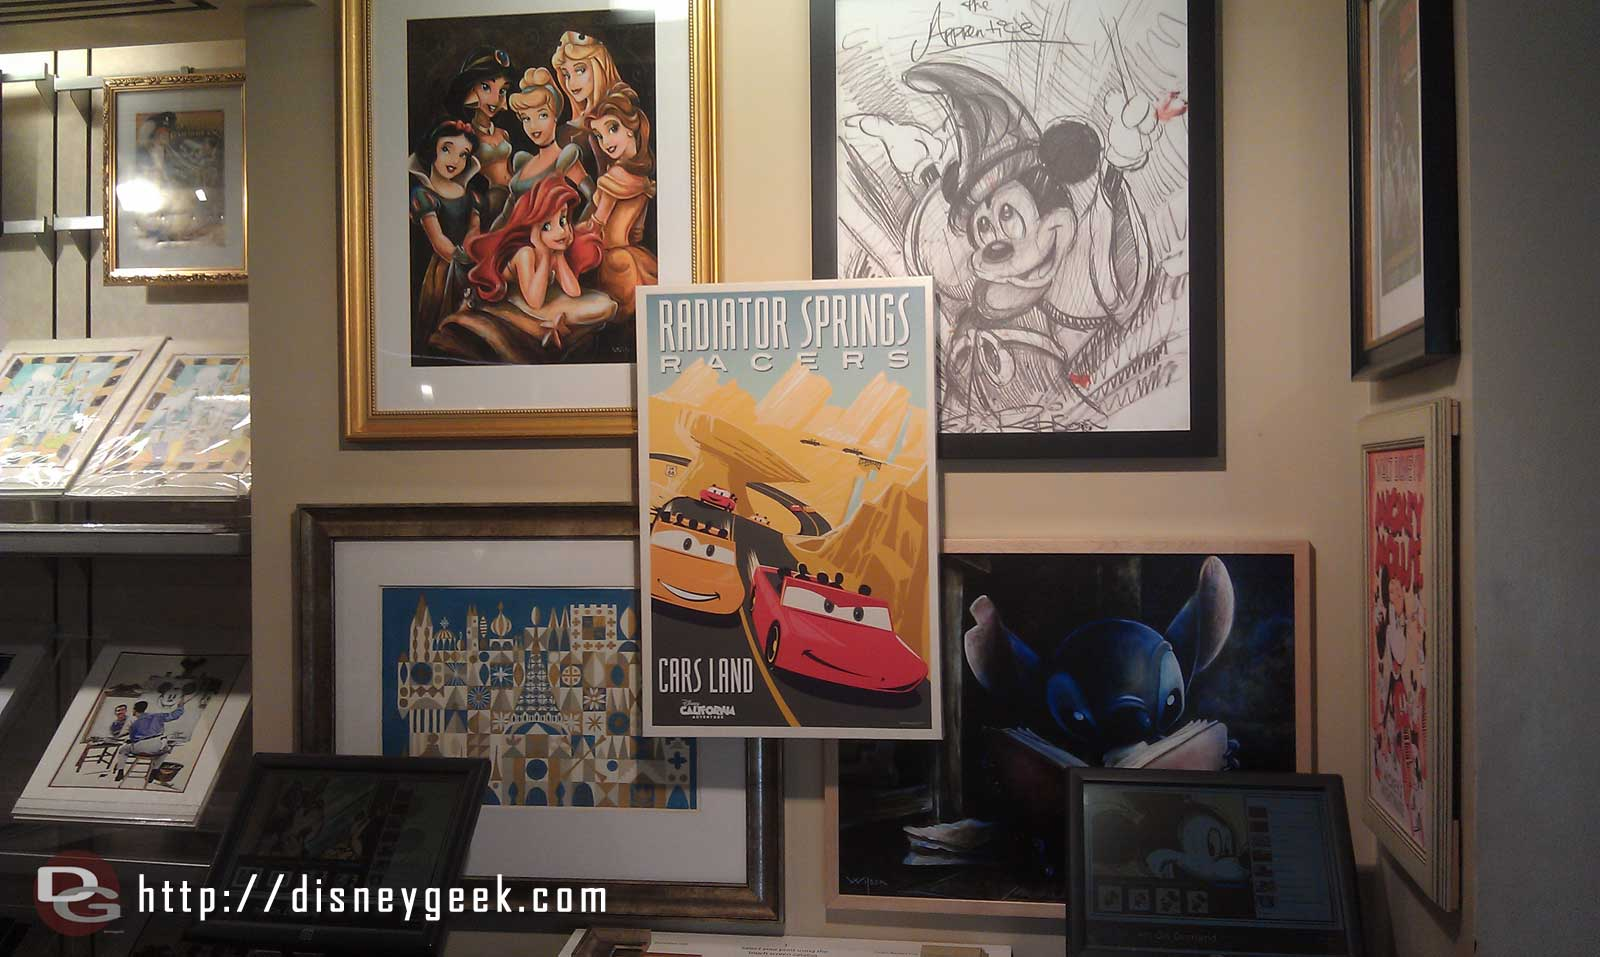 Radiator Springs Racers attraction poster front and center in the Animation Gallery